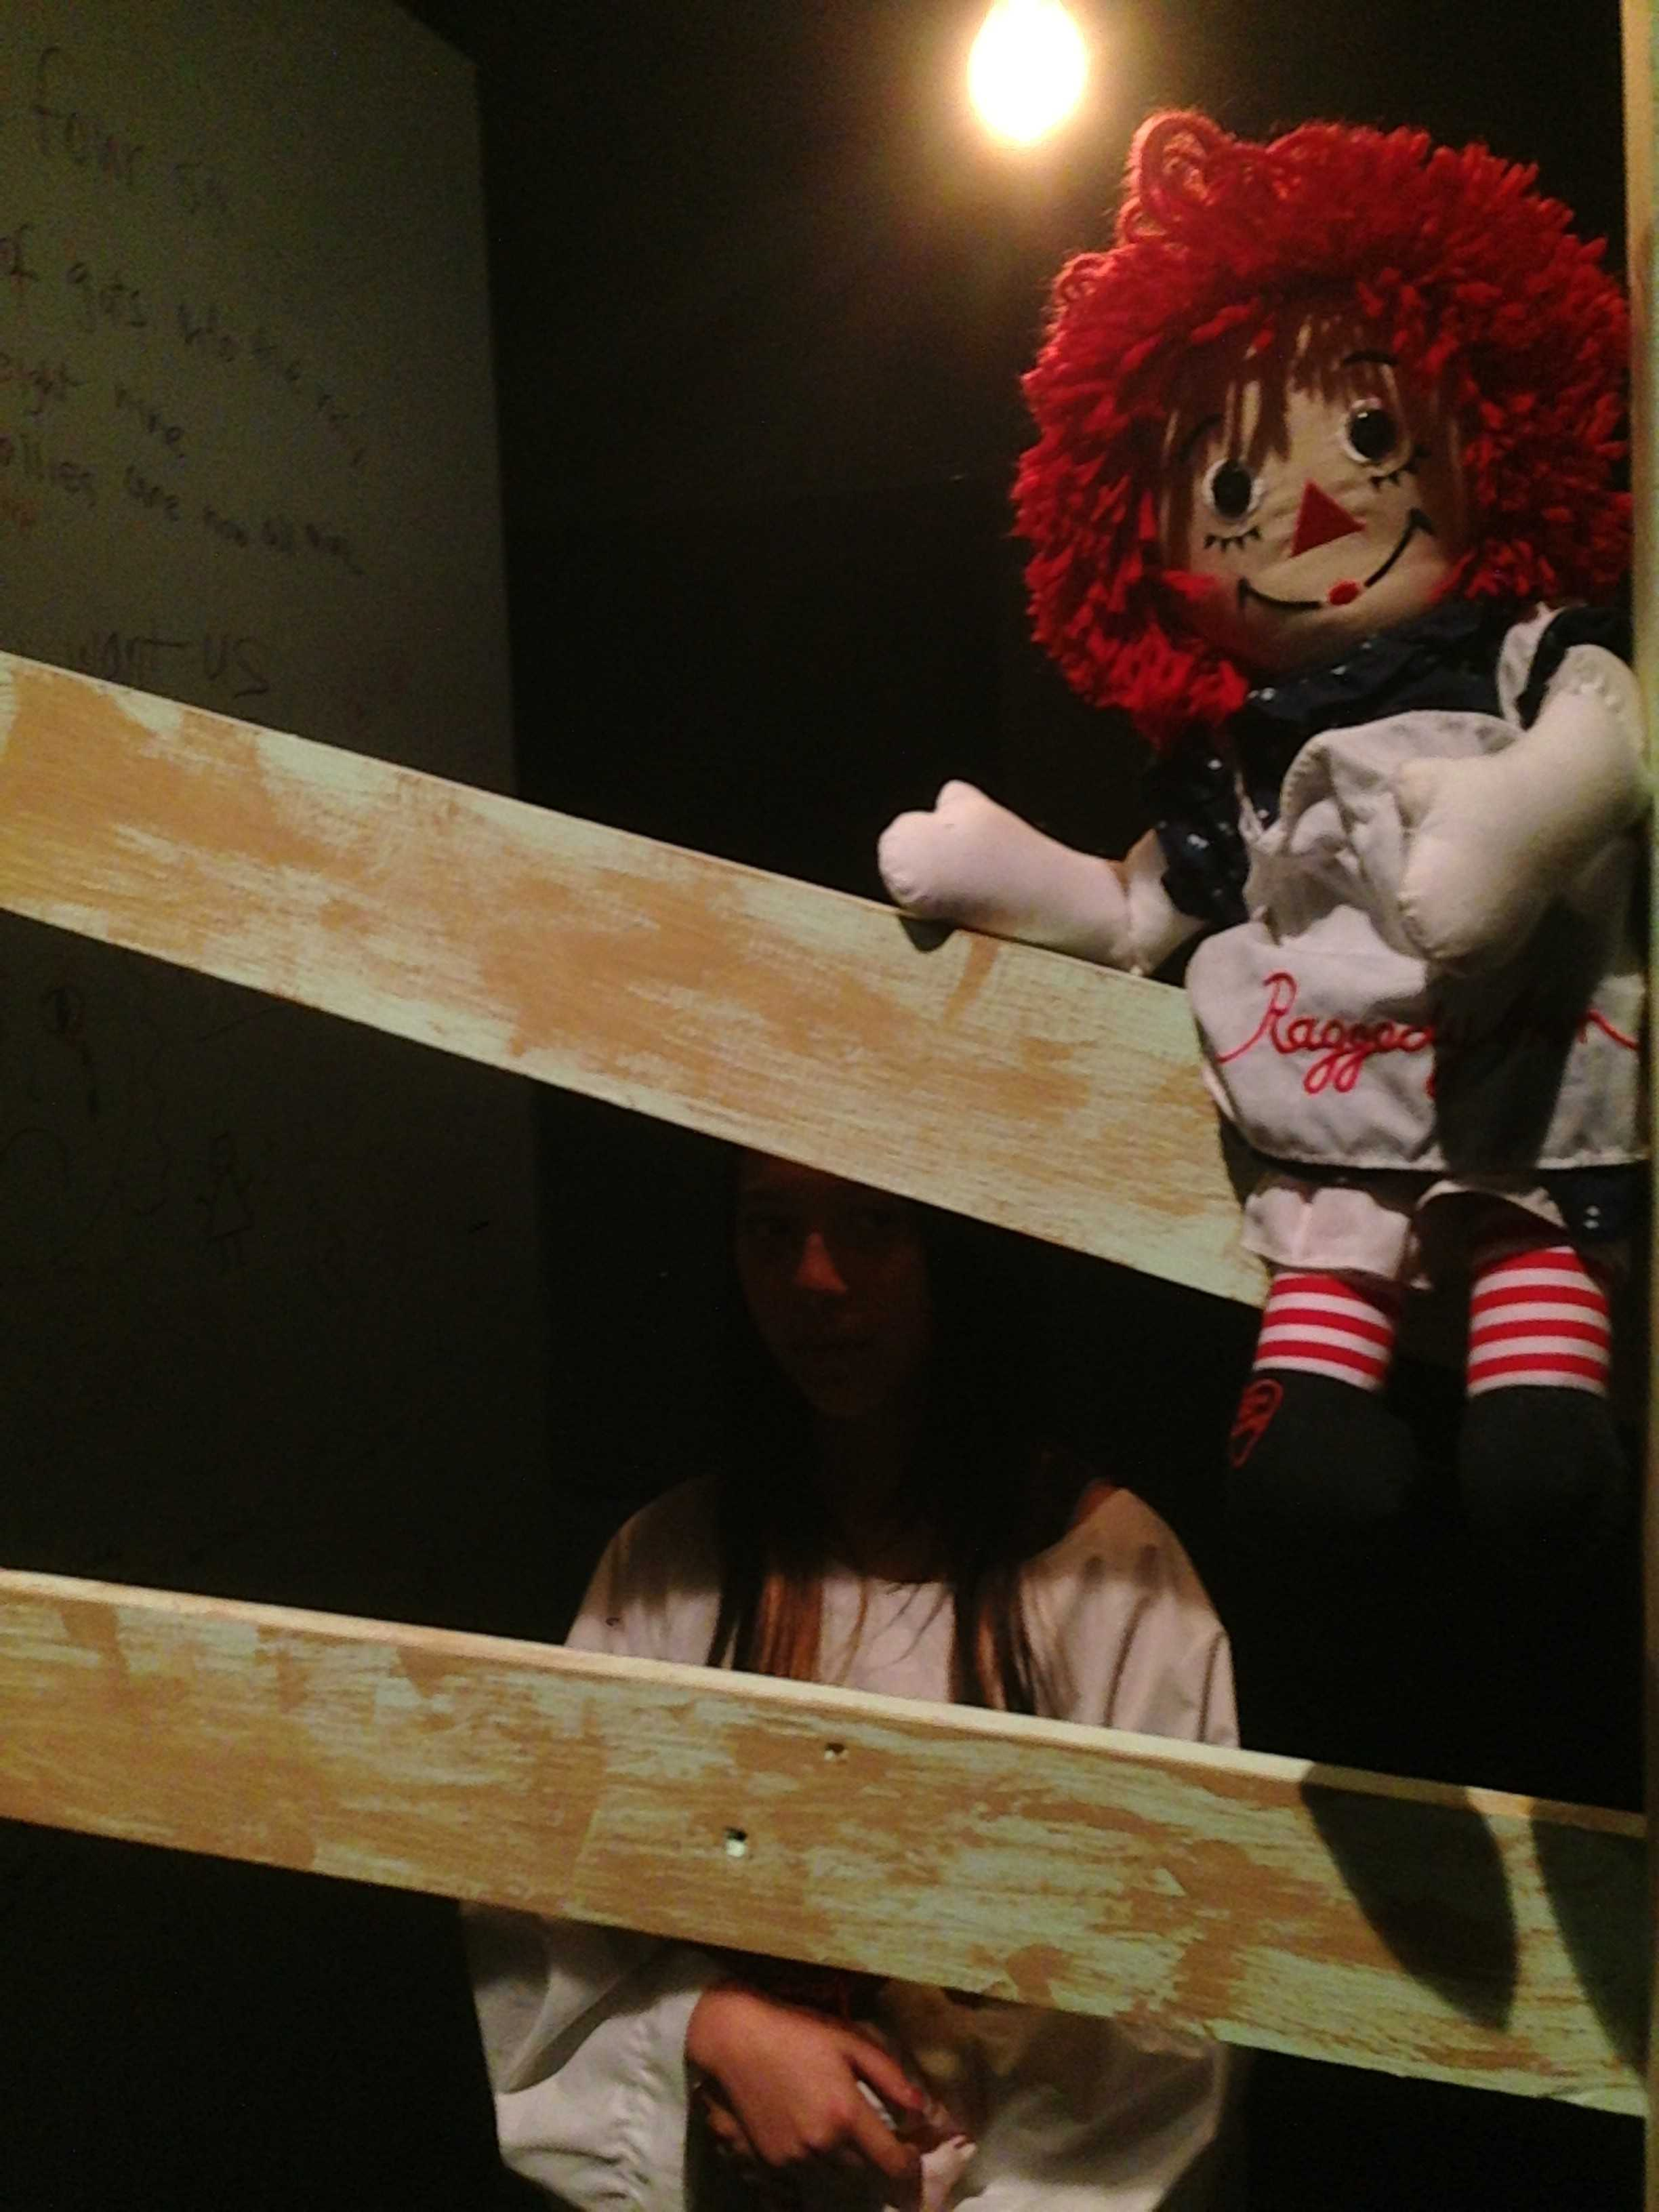 """An asylum patient stands in her boarded-up stall, next to a wall covered in """"bloody"""" writing. The Drama students practiced to immerse themselves in their insane characters' roles. Photo by Rhonda Mak."""